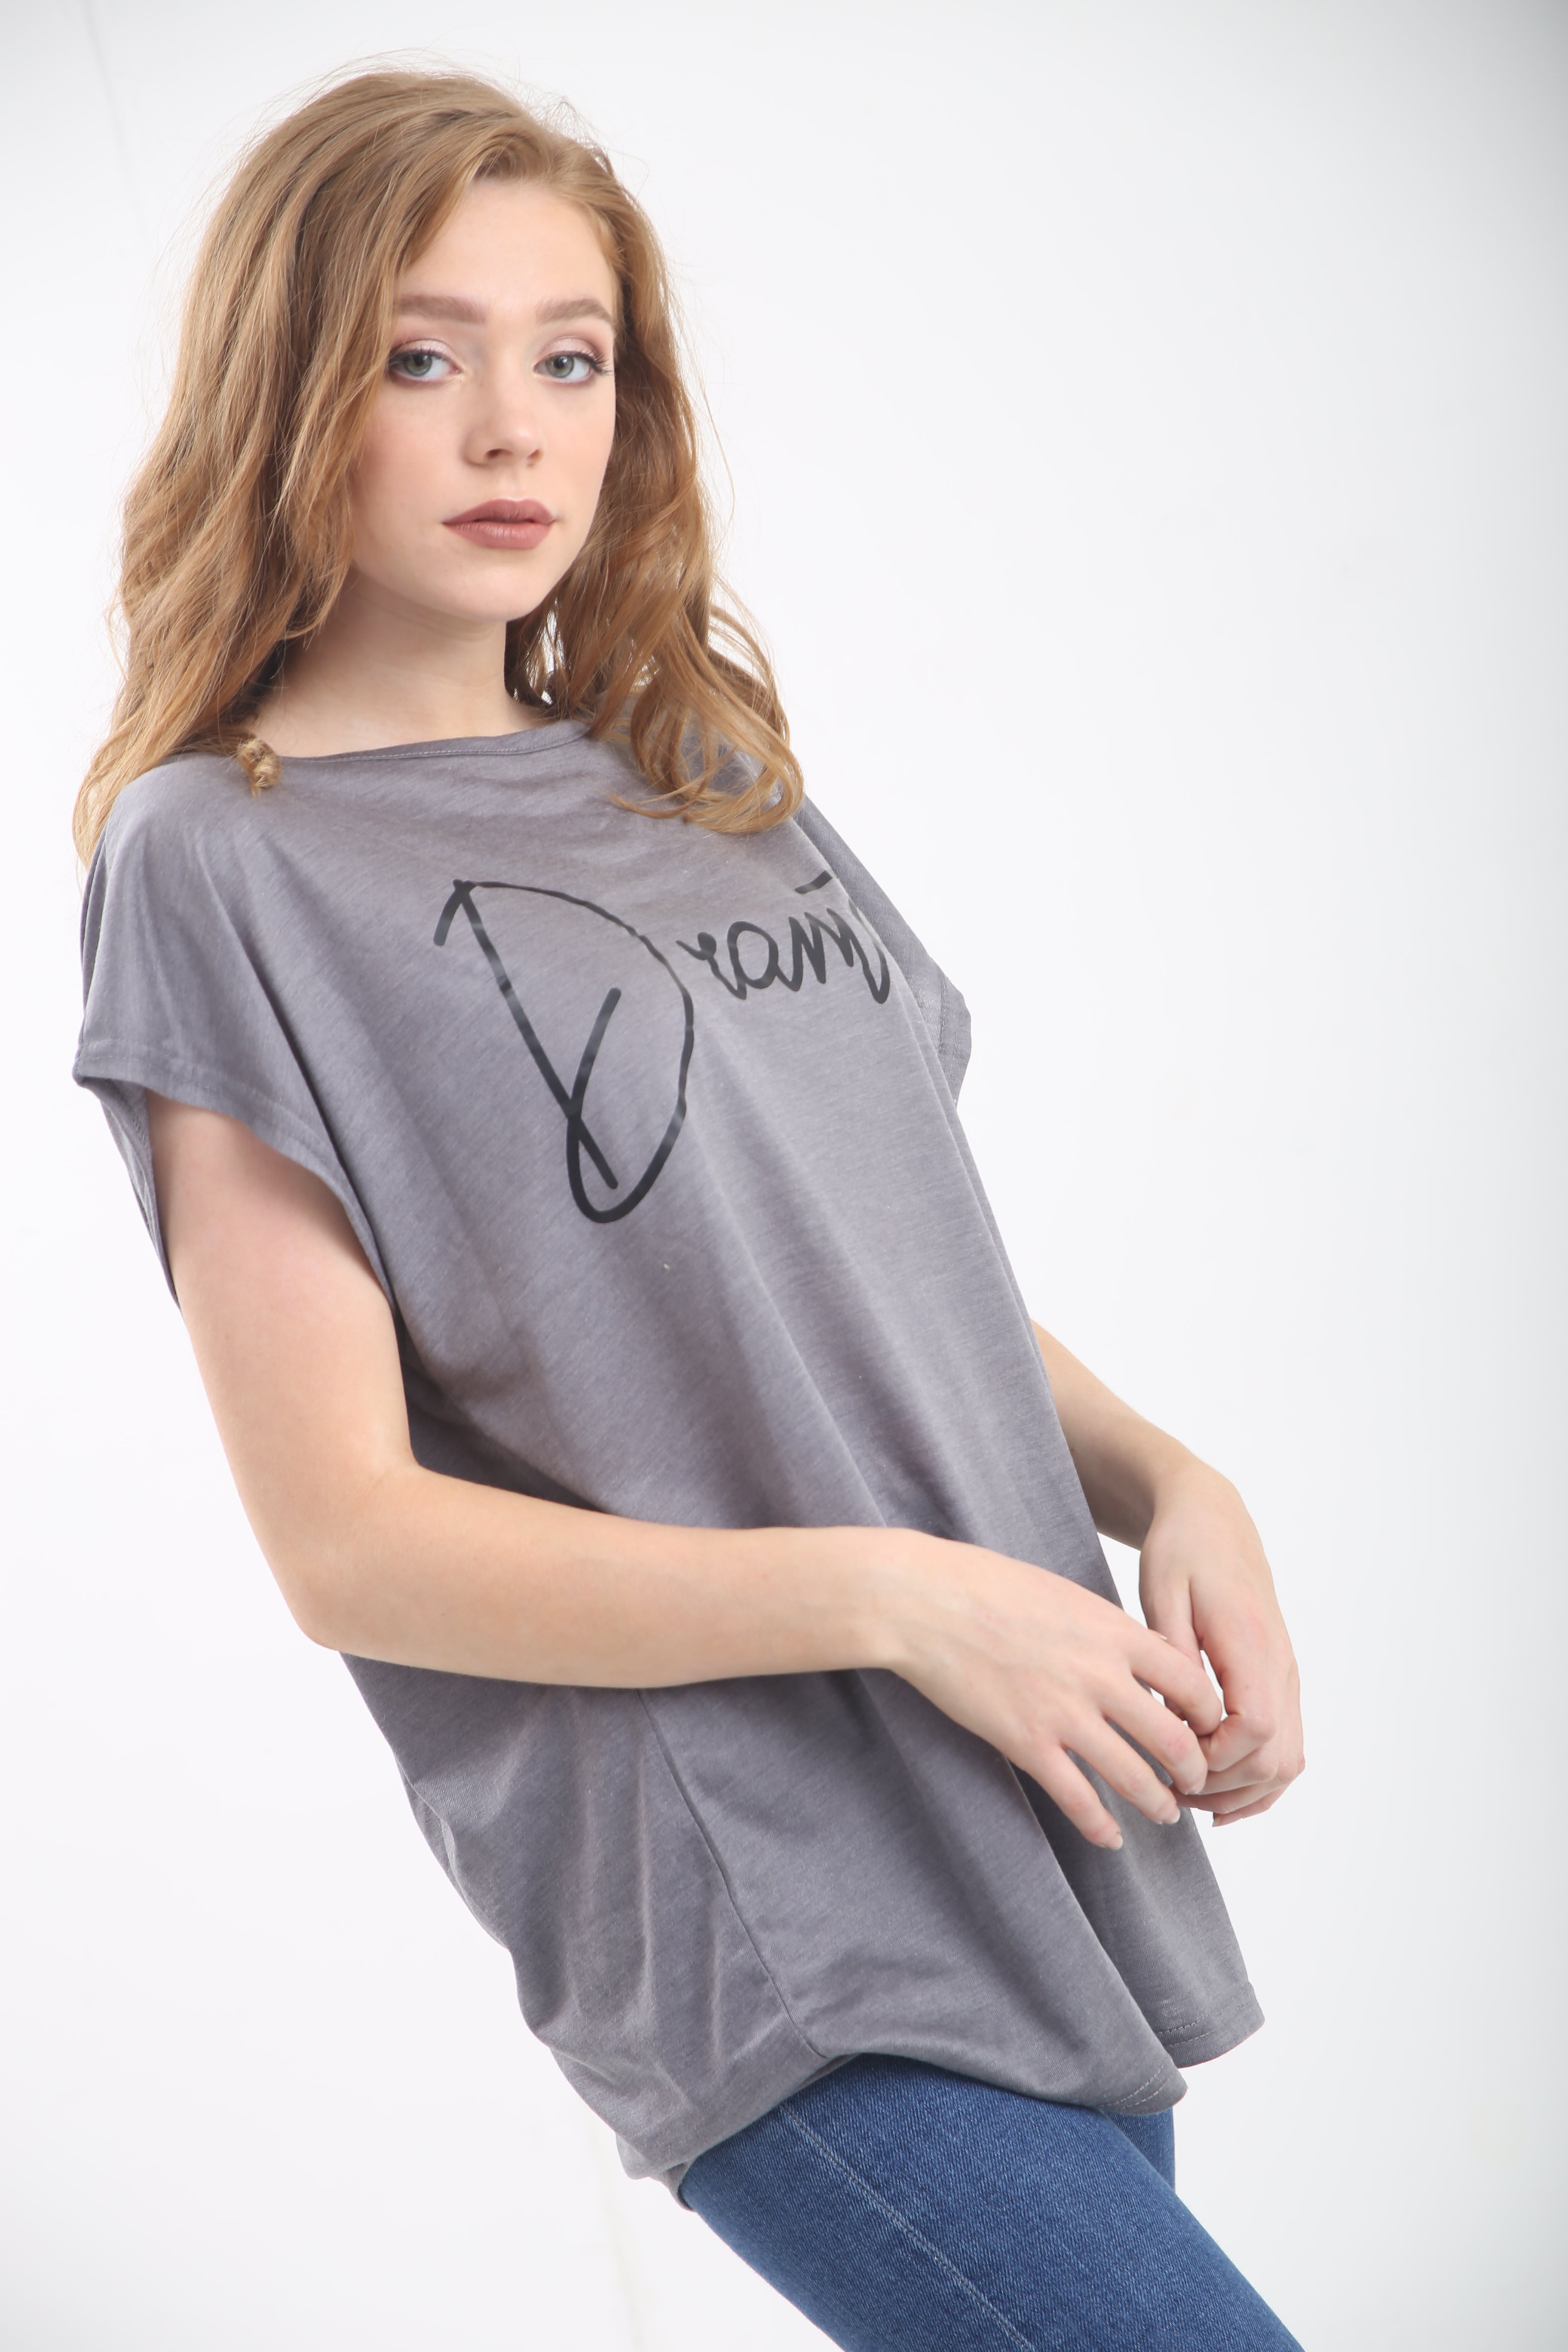 Turn Up Sleeve Dramatic Slogan Print Baggy Tshirt - bejealous-com